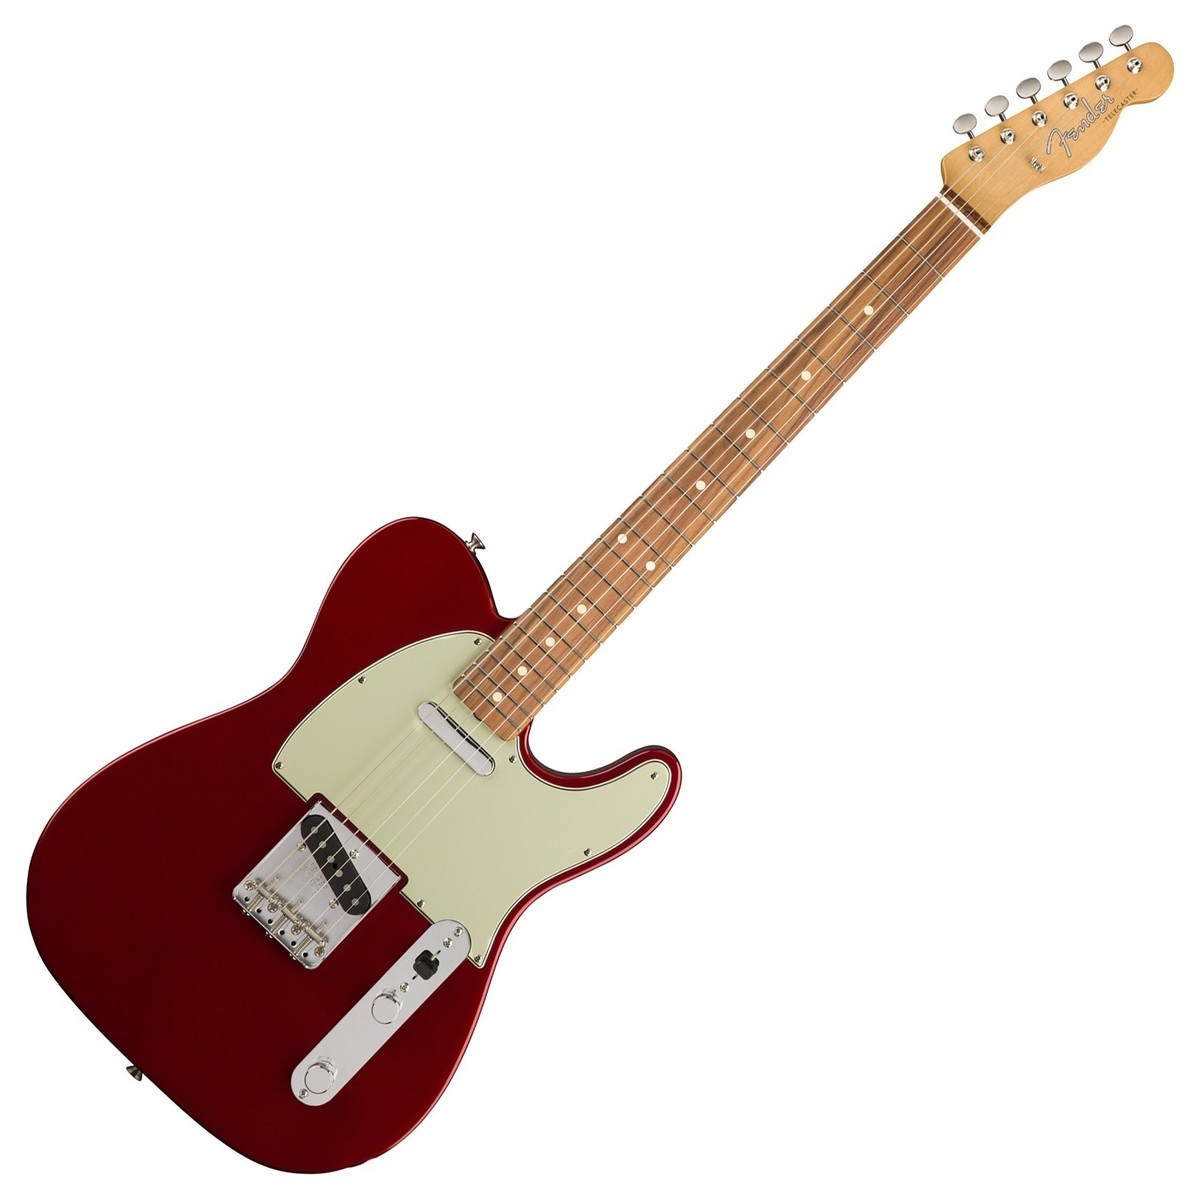 fender classic series 60s telecaster pw candy apple red at gear4music. Black Bedroom Furniture Sets. Home Design Ideas